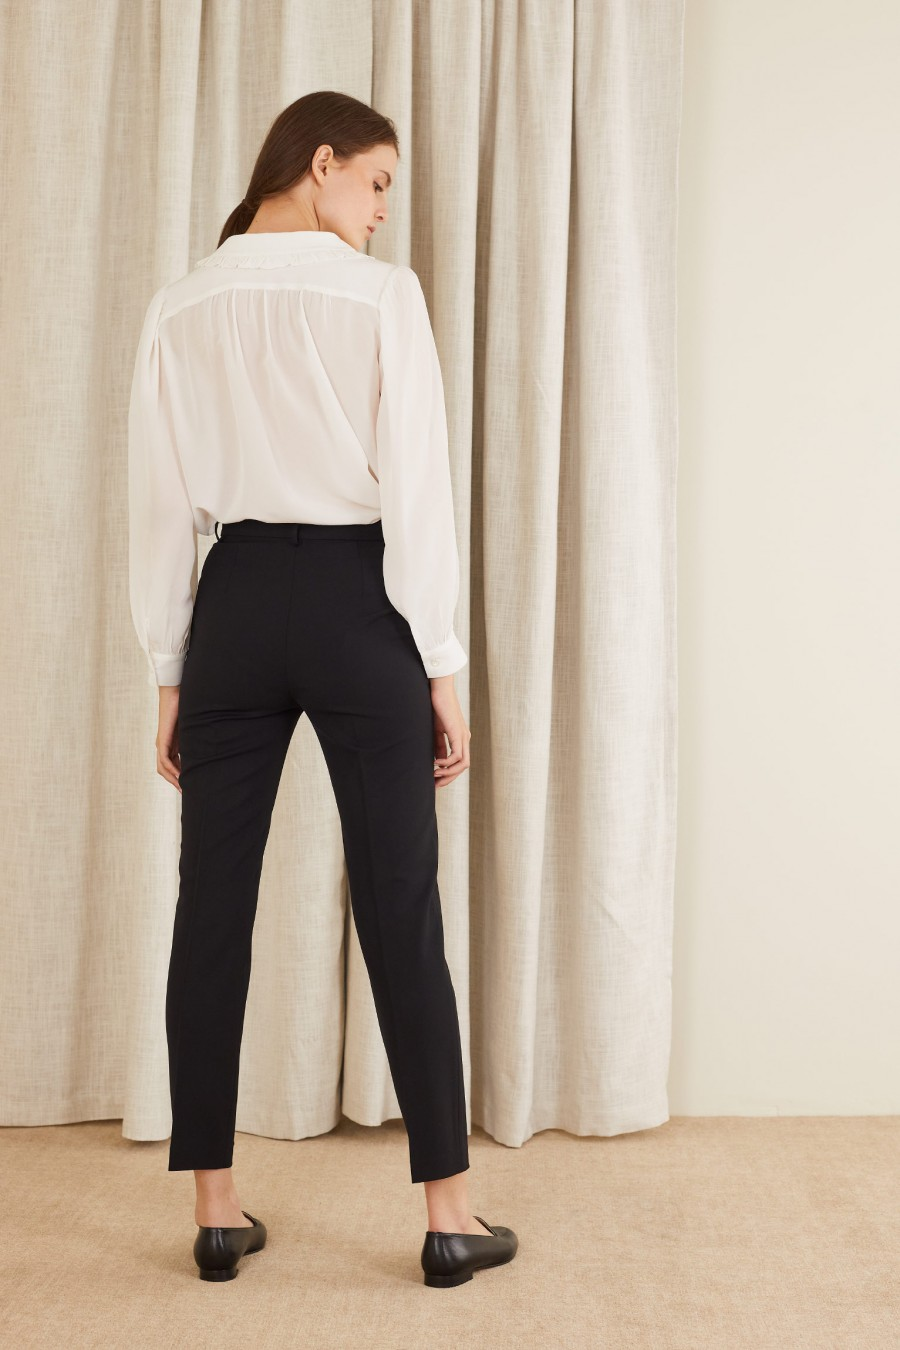 cigarette trousers for the office